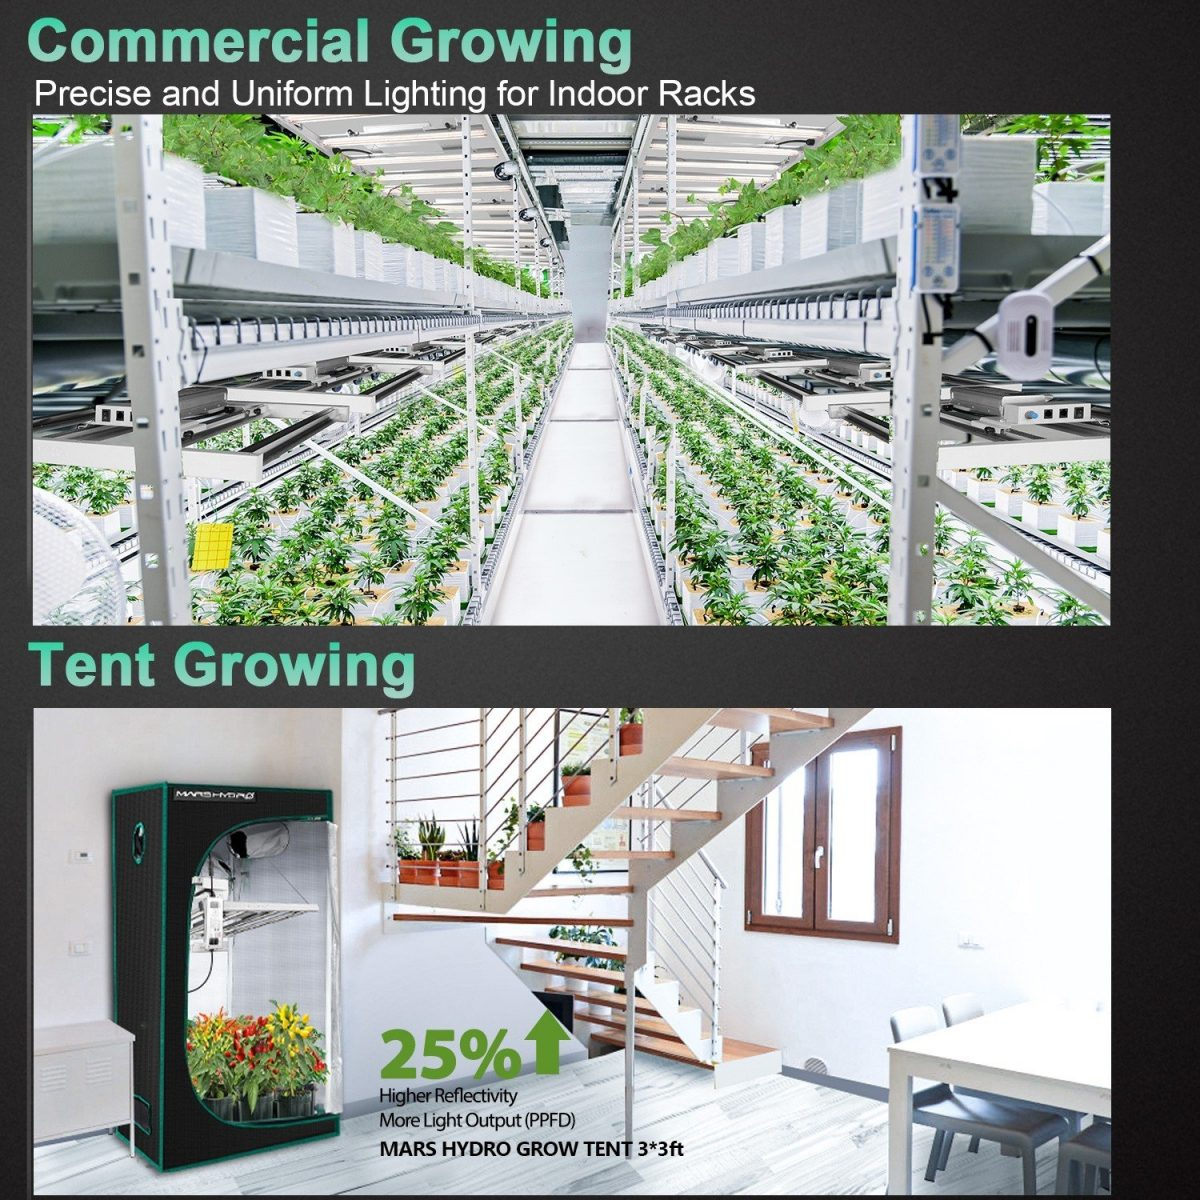 FC-E3000 is good for tent and commercial grow